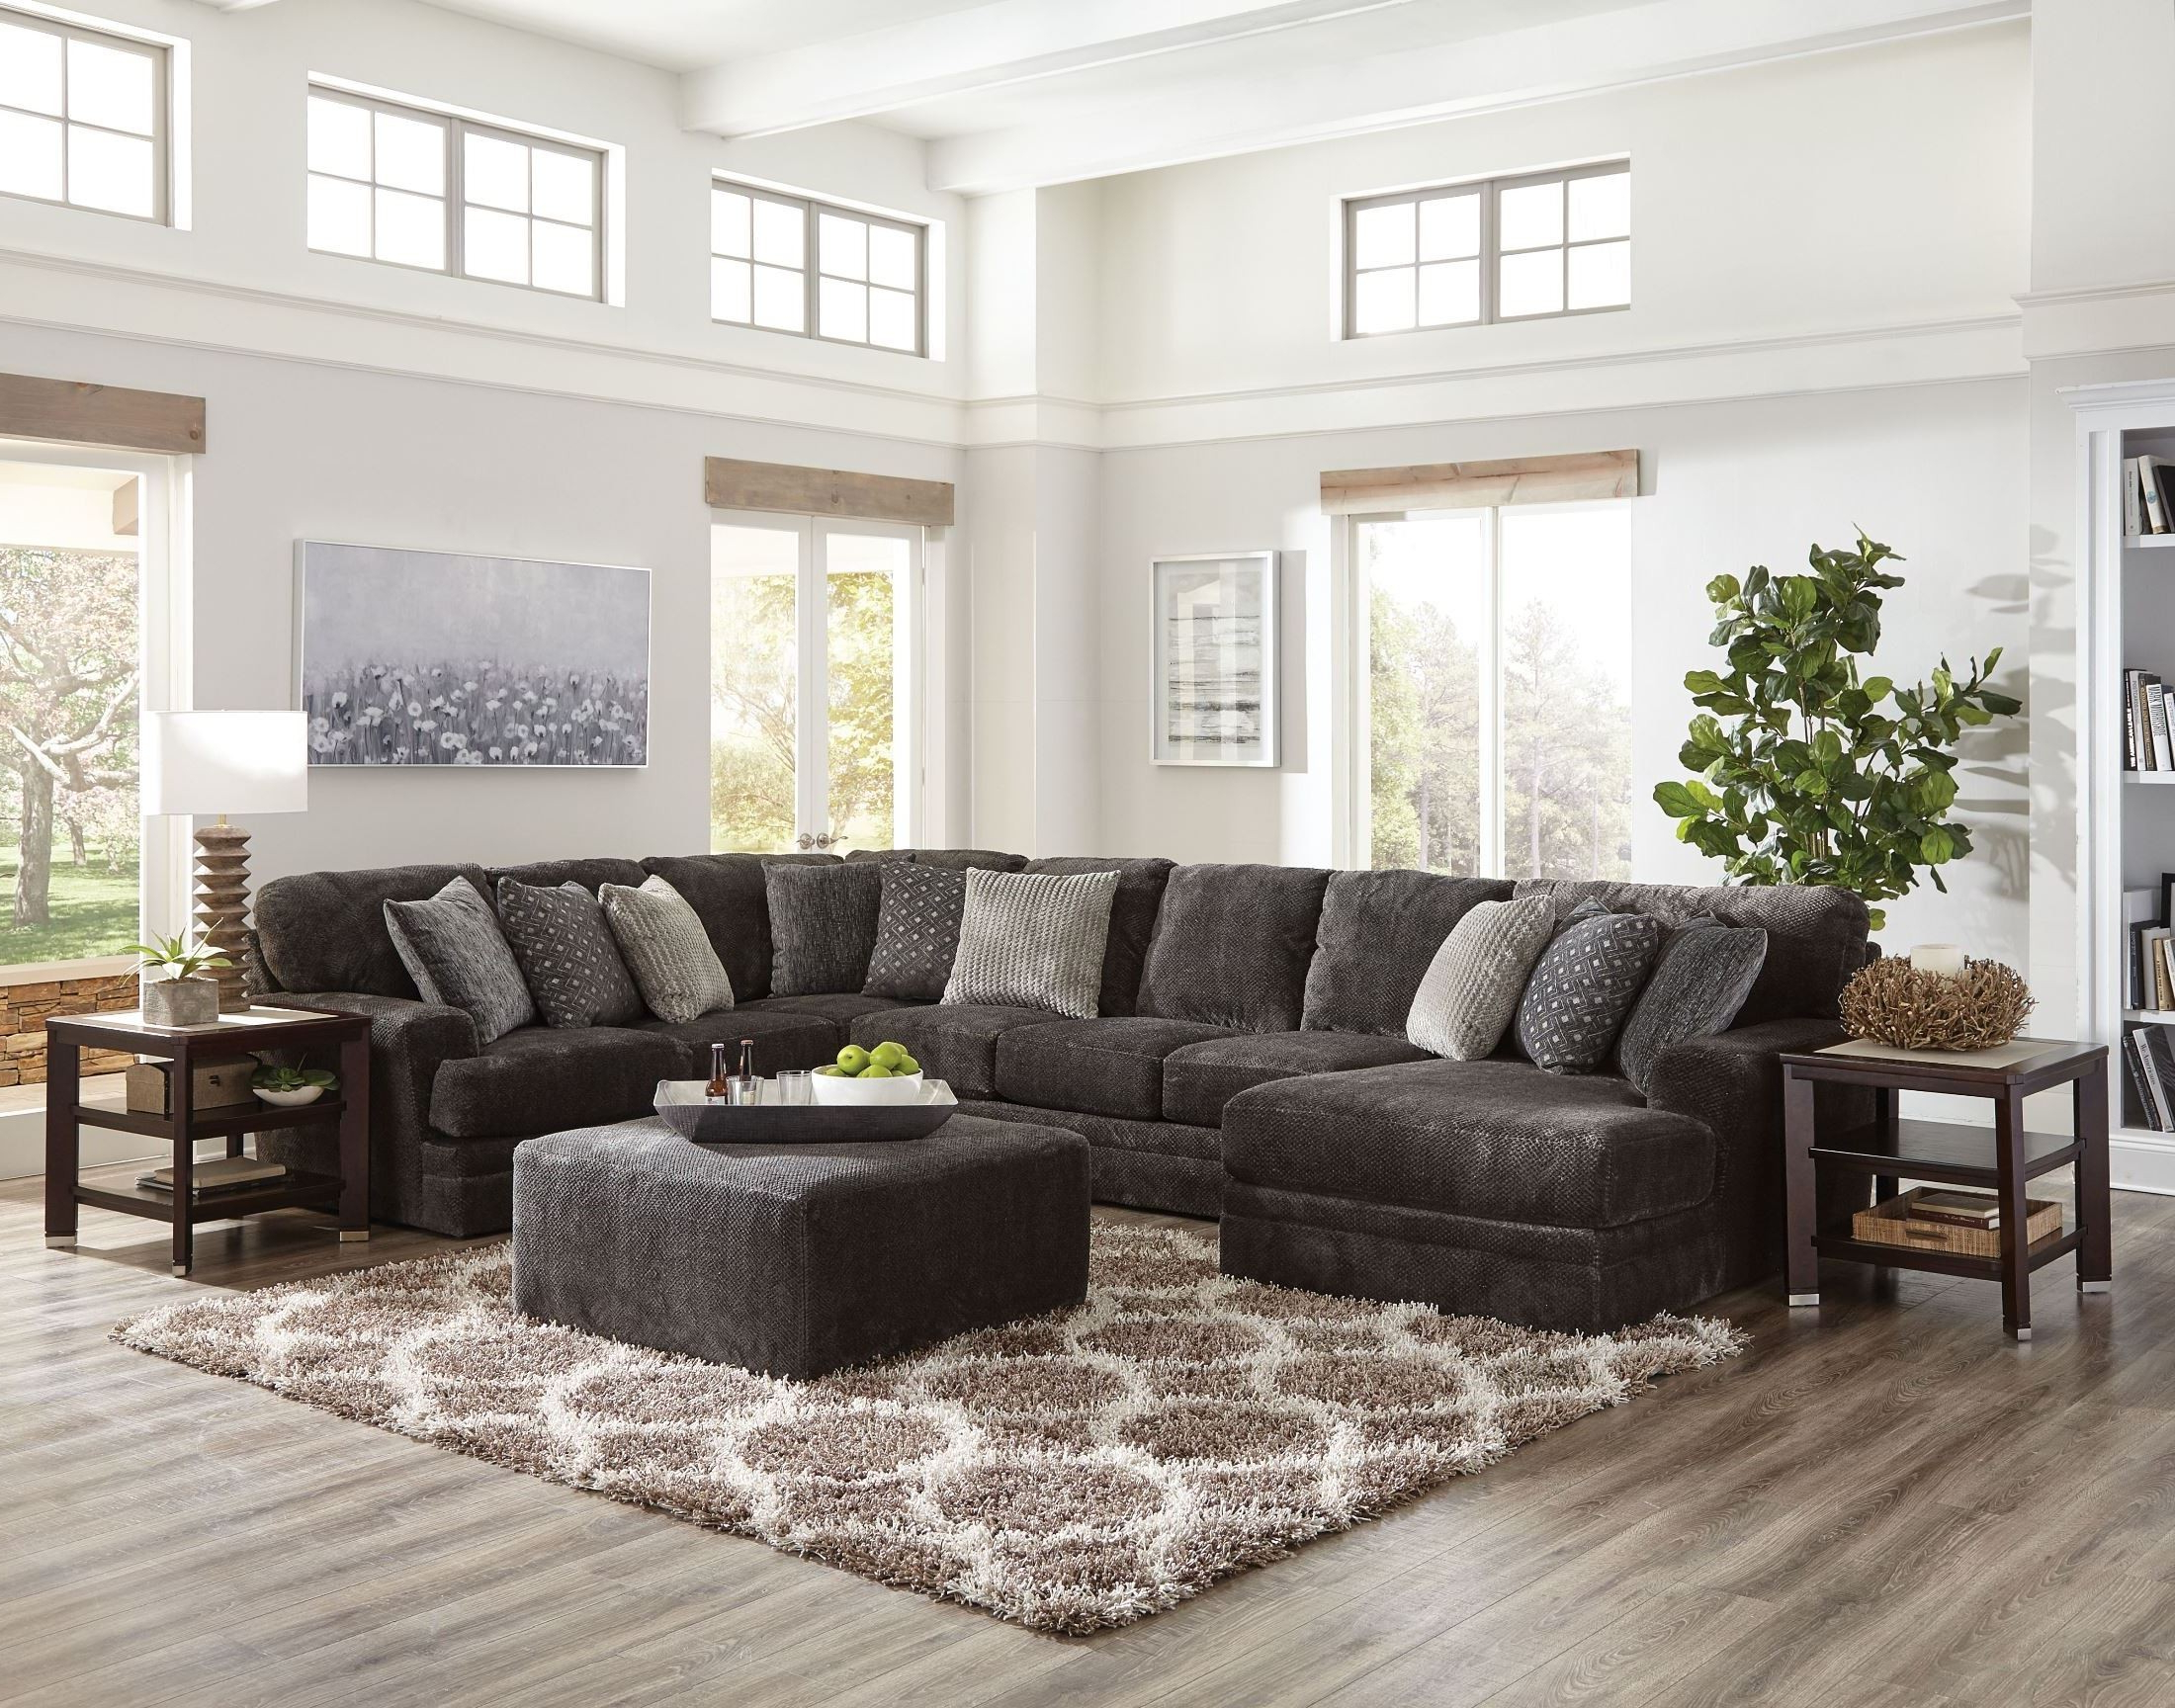 Coleman Furniture Throughout Most Current Avery 2 Piece Sectionals With Laf Armless Chaise (View 9 of 20)